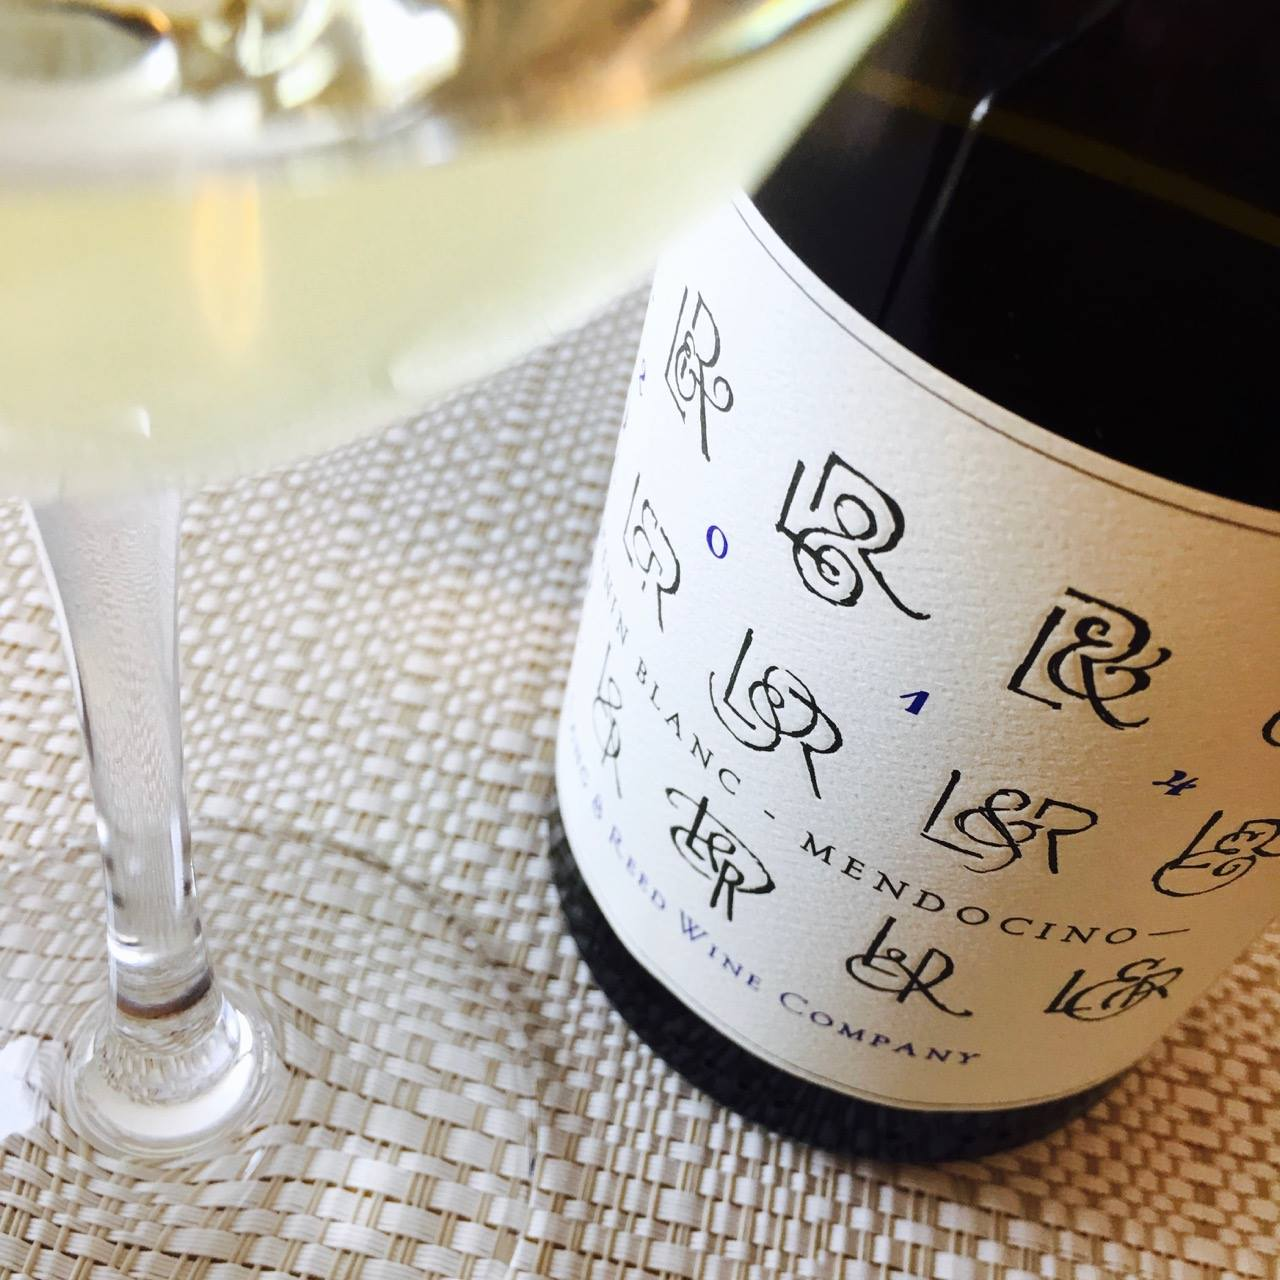 2014 Lang and Reed Chenin Blanc Mendocino